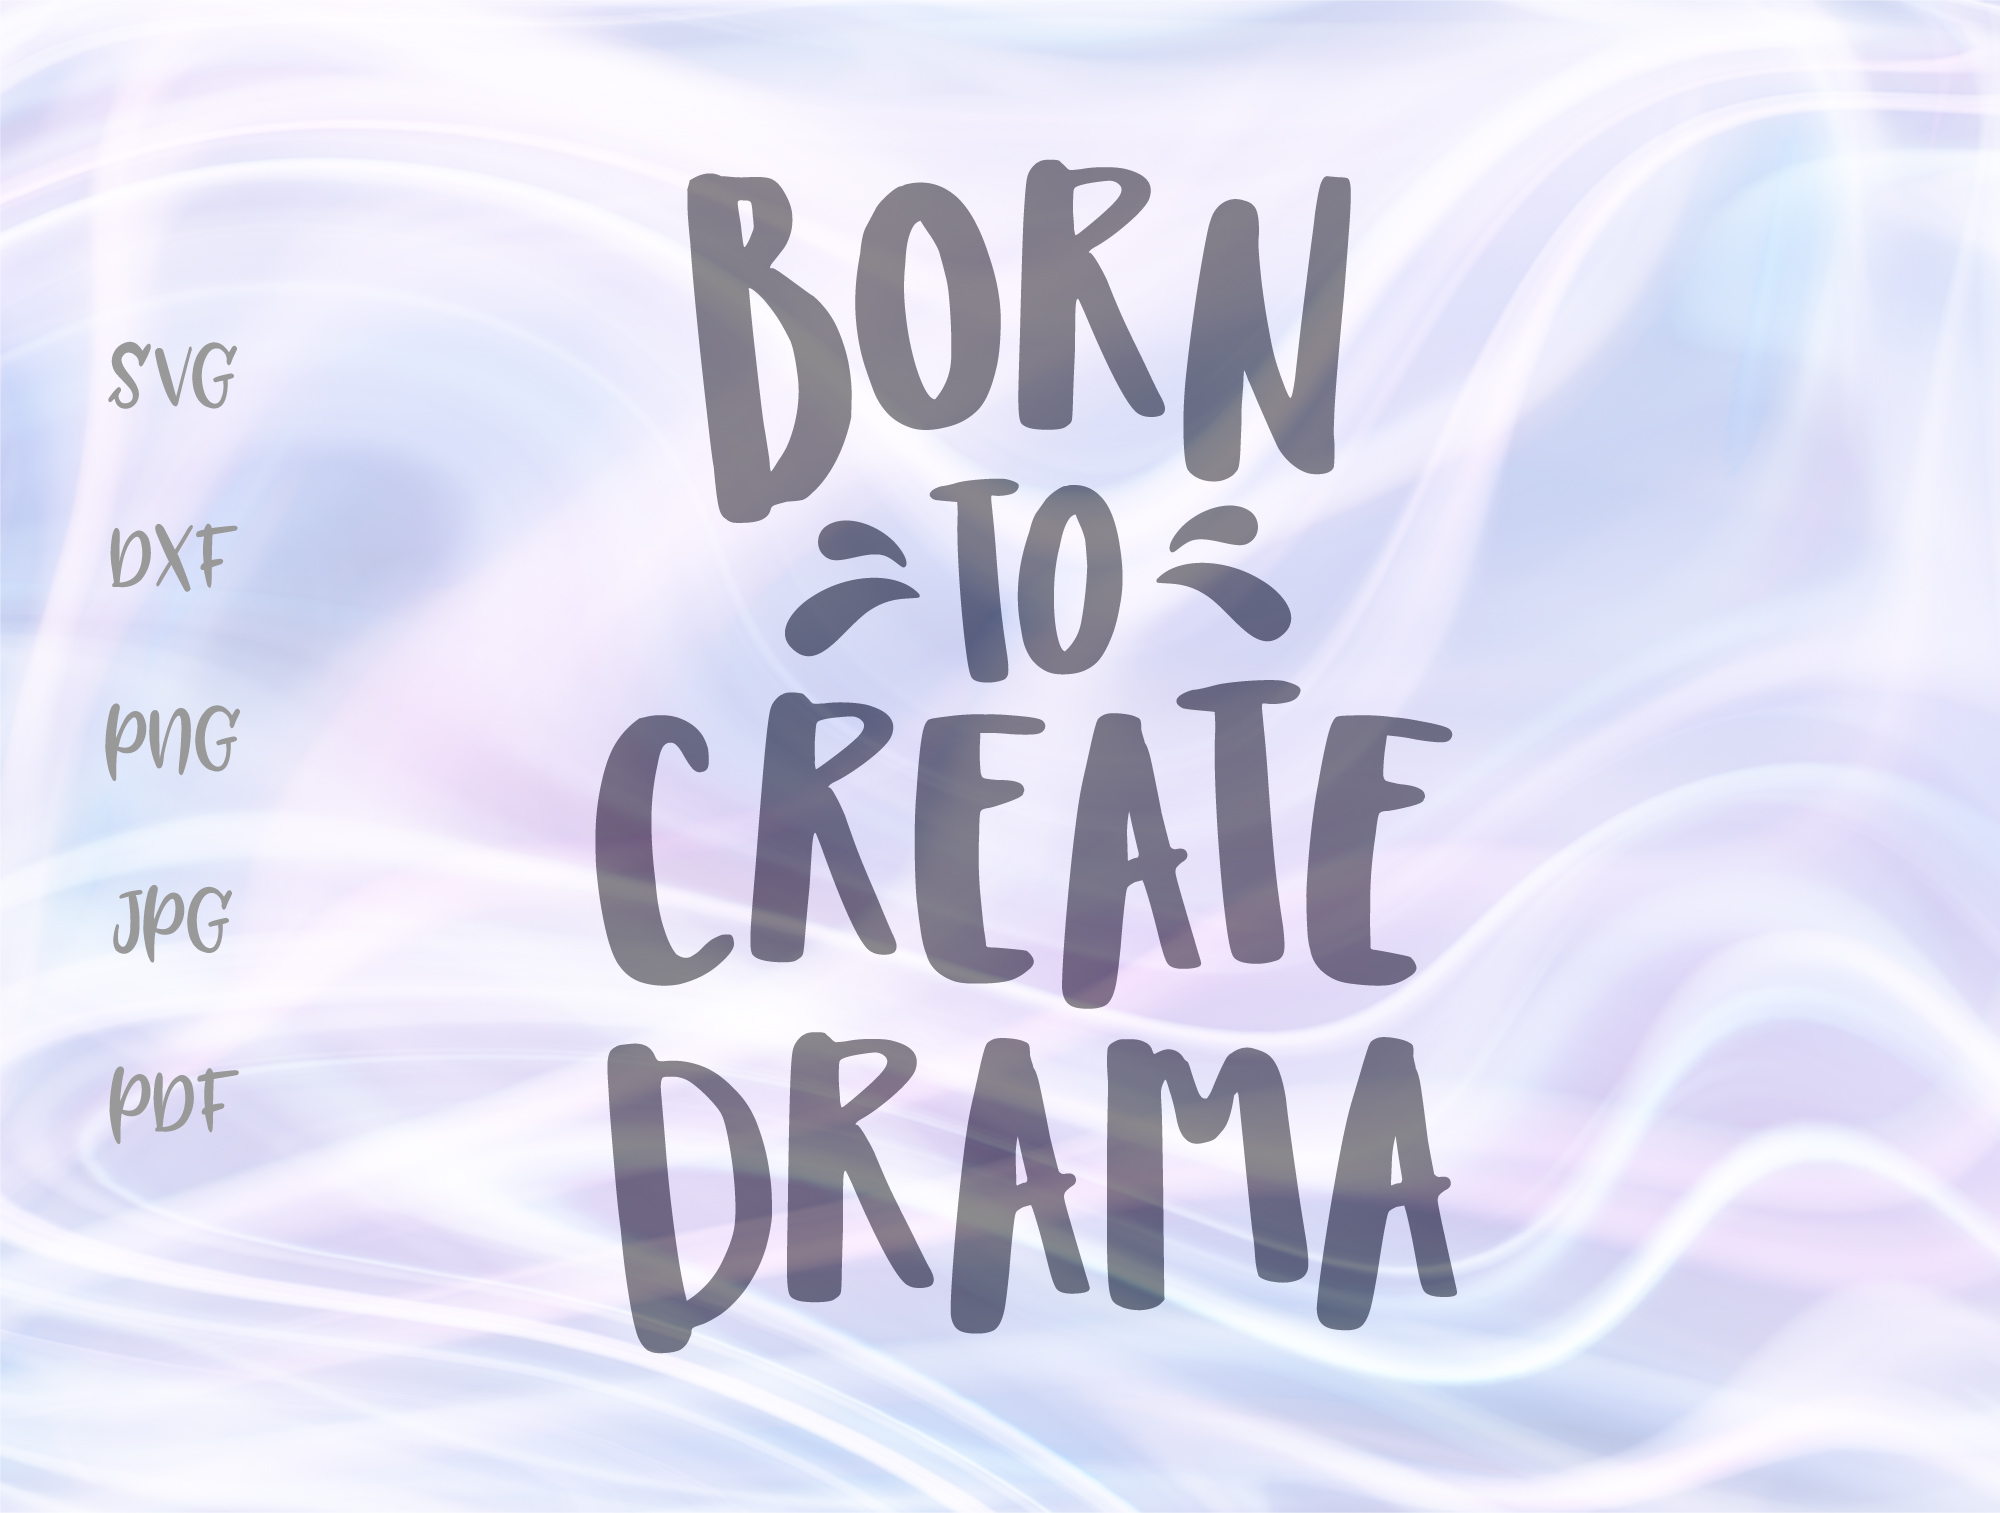 Download Free Born To Create Drama Sarcastic Sign Graphic By Digitals By Hanna for Cricut Explore, Silhouette and other cutting machines.